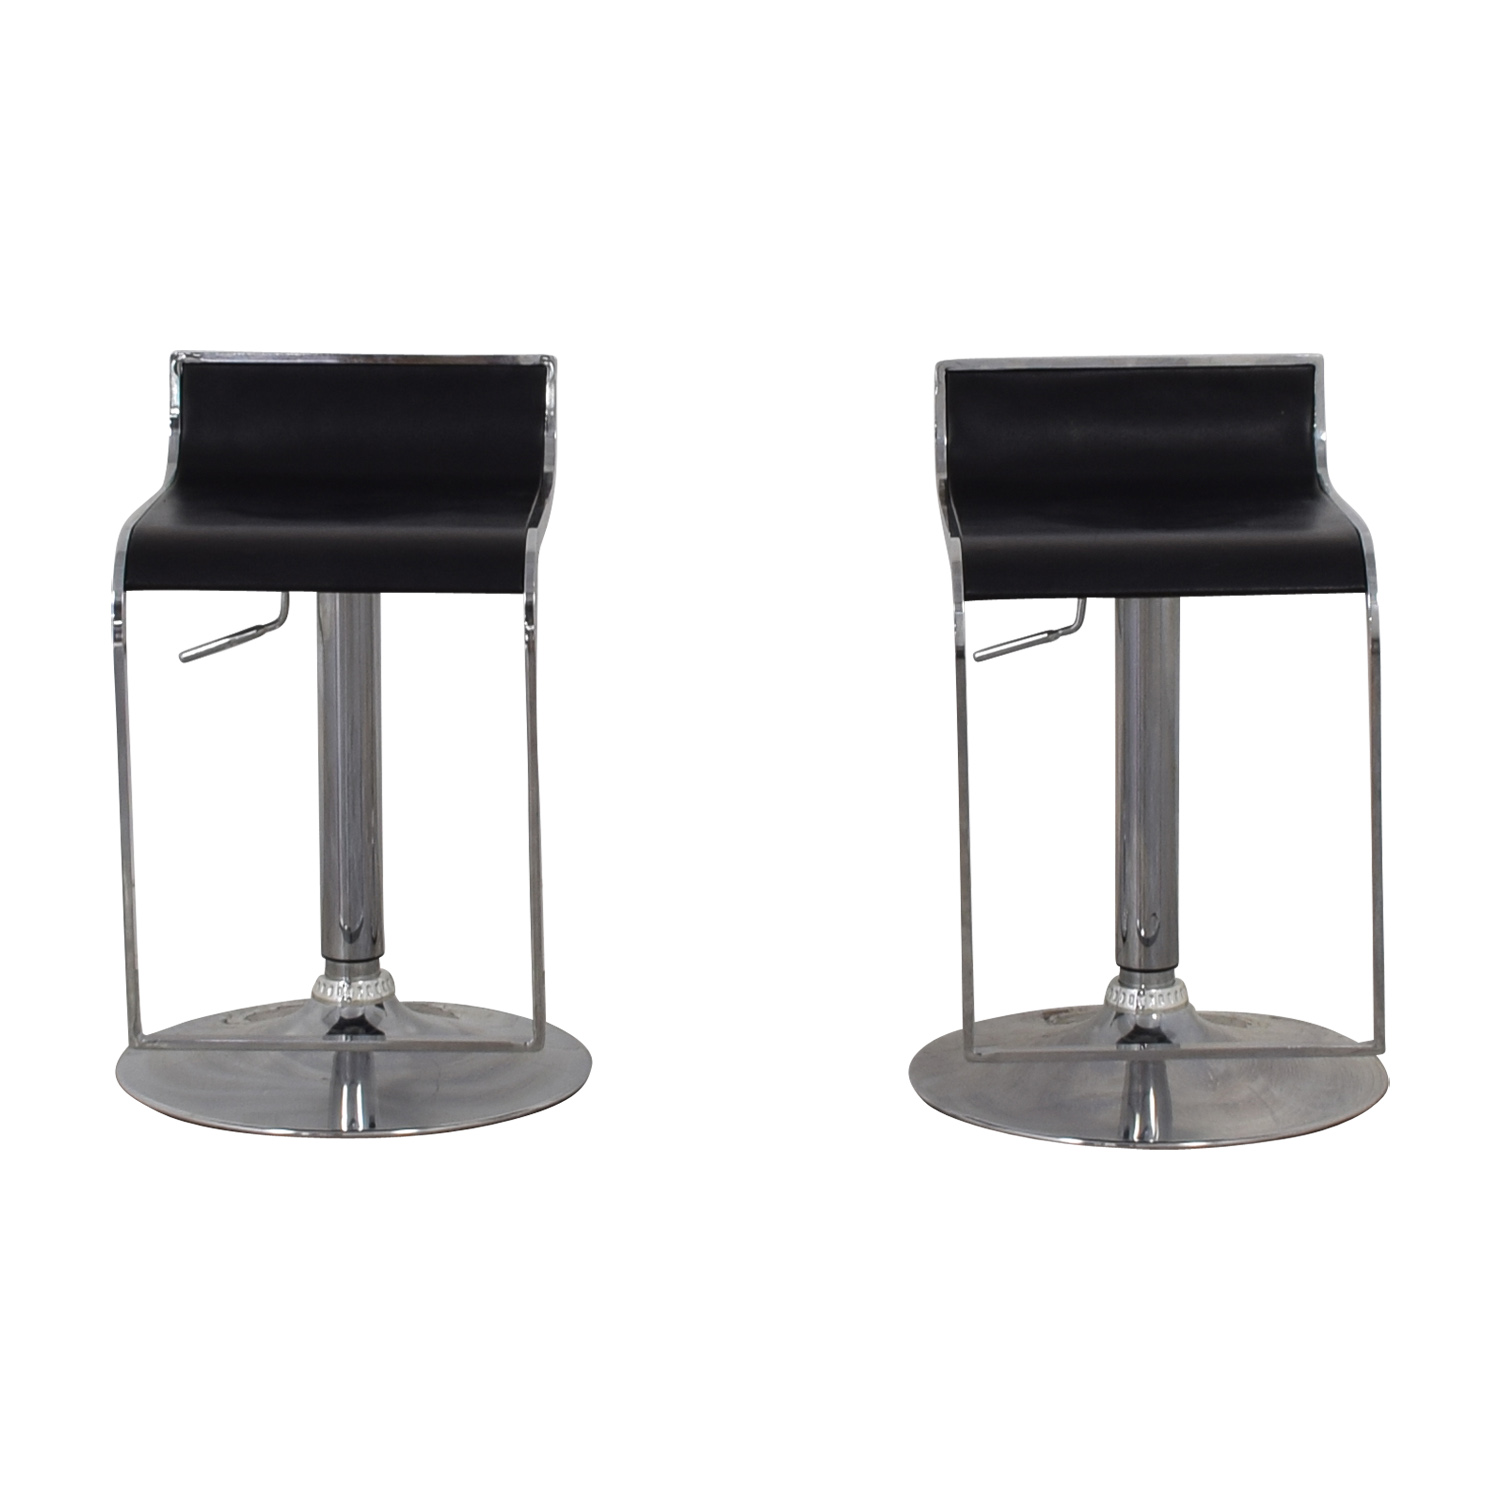 CB2 CB2 Modern Leather Stools for sale